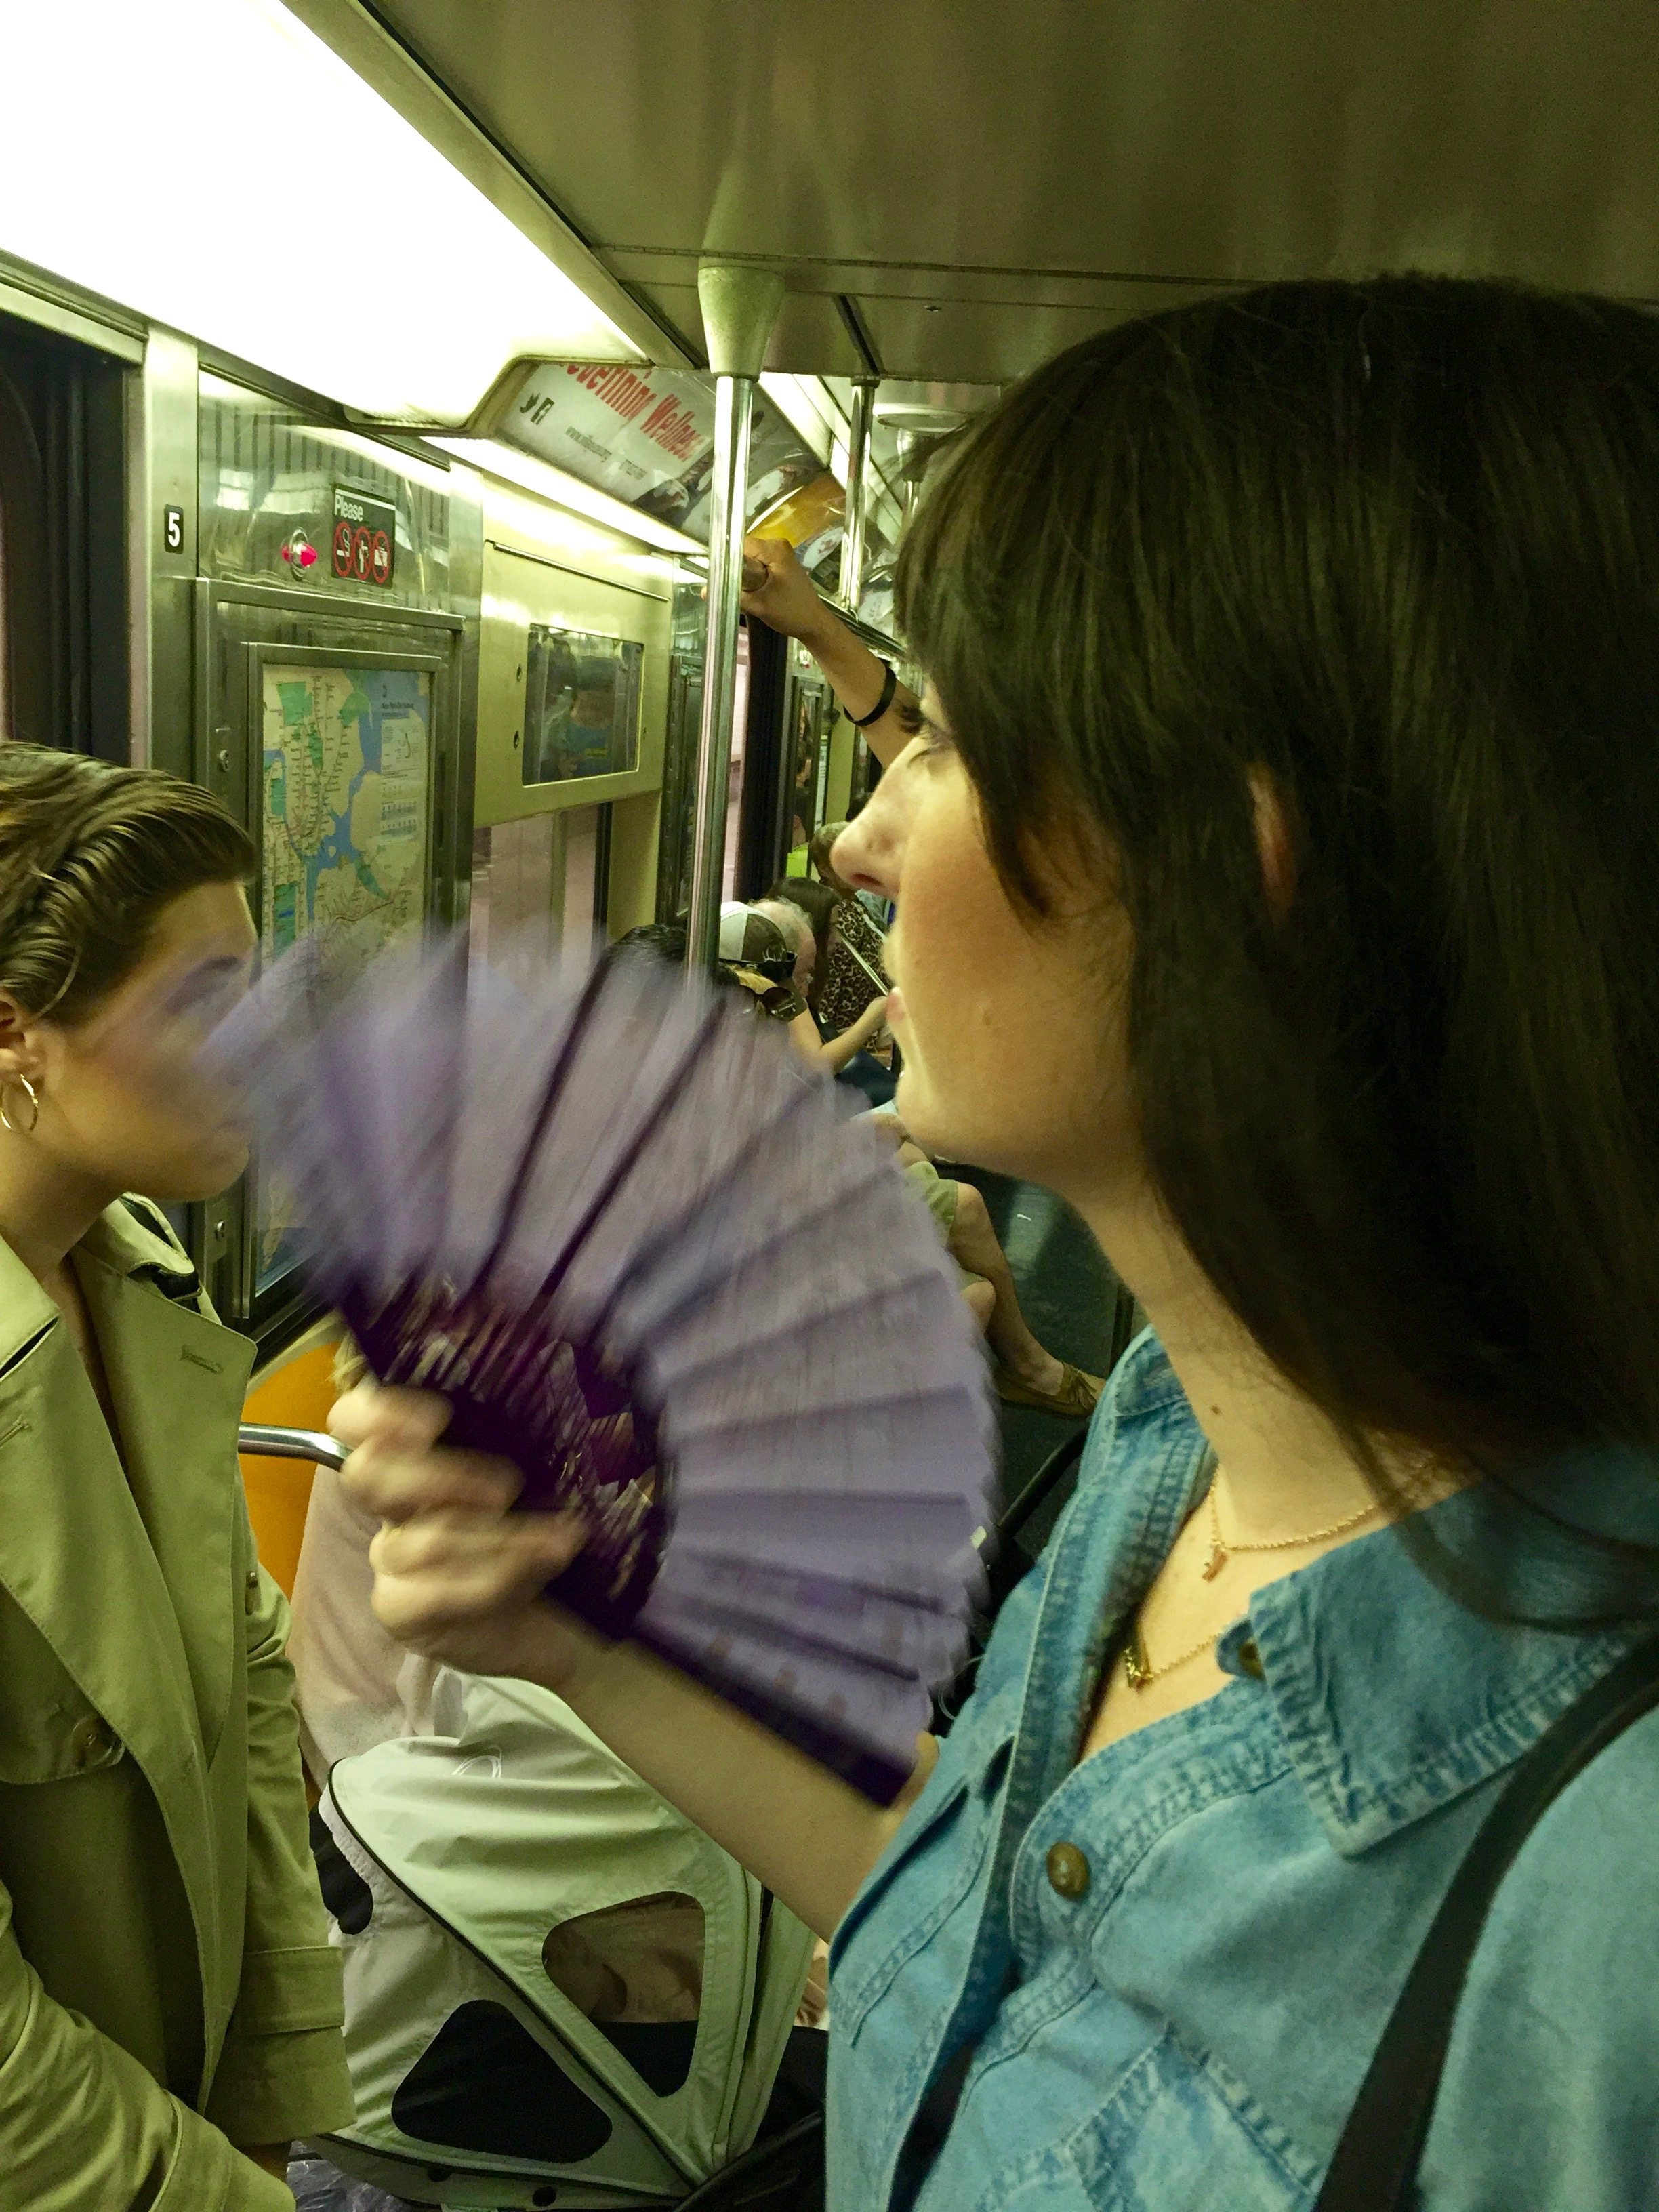 Subway expert tip: buy a fan.